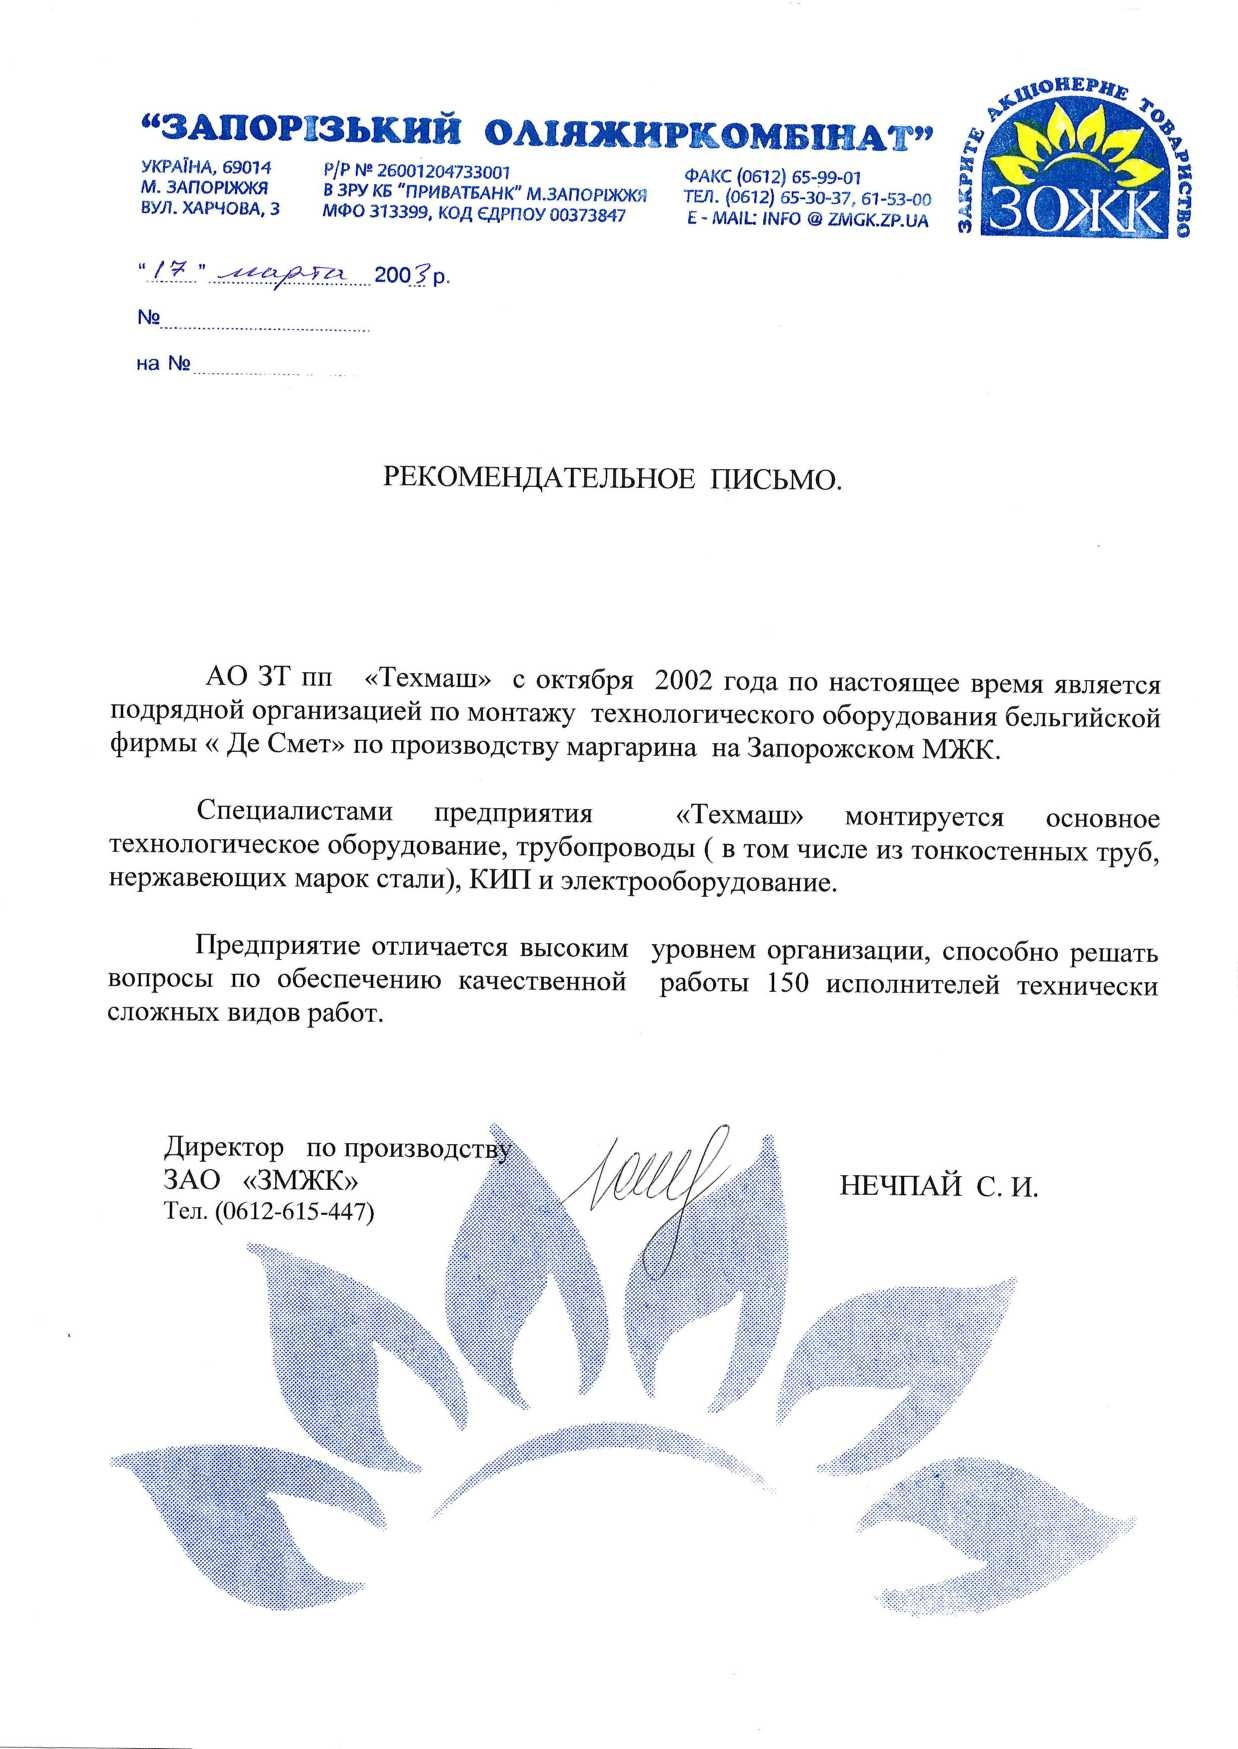 Zaporozhye Oil and Fat Plant Reference letter